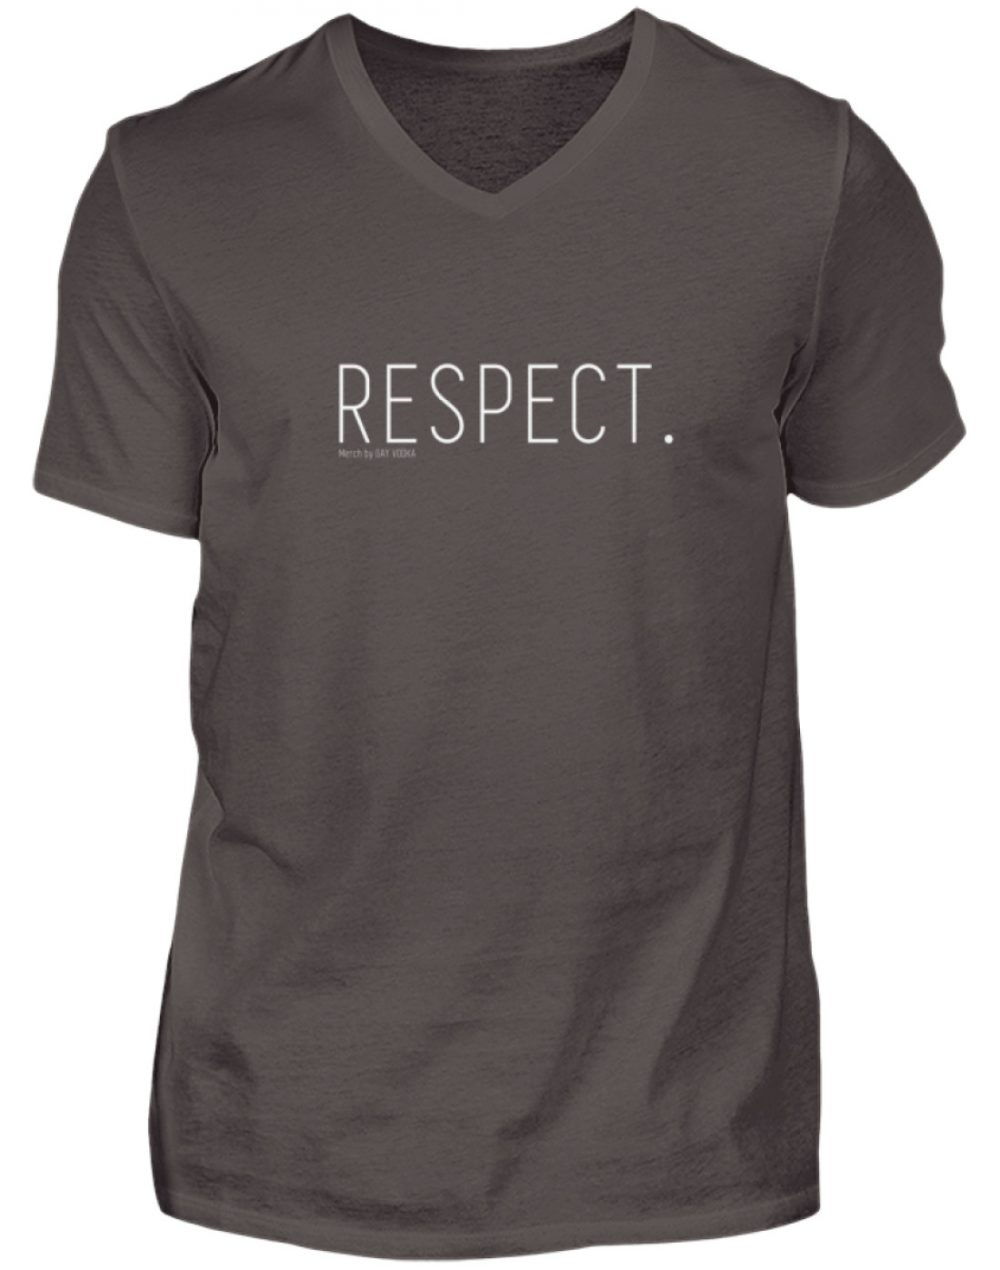 RESPECT. - Herren V-Neck Shirt-2618